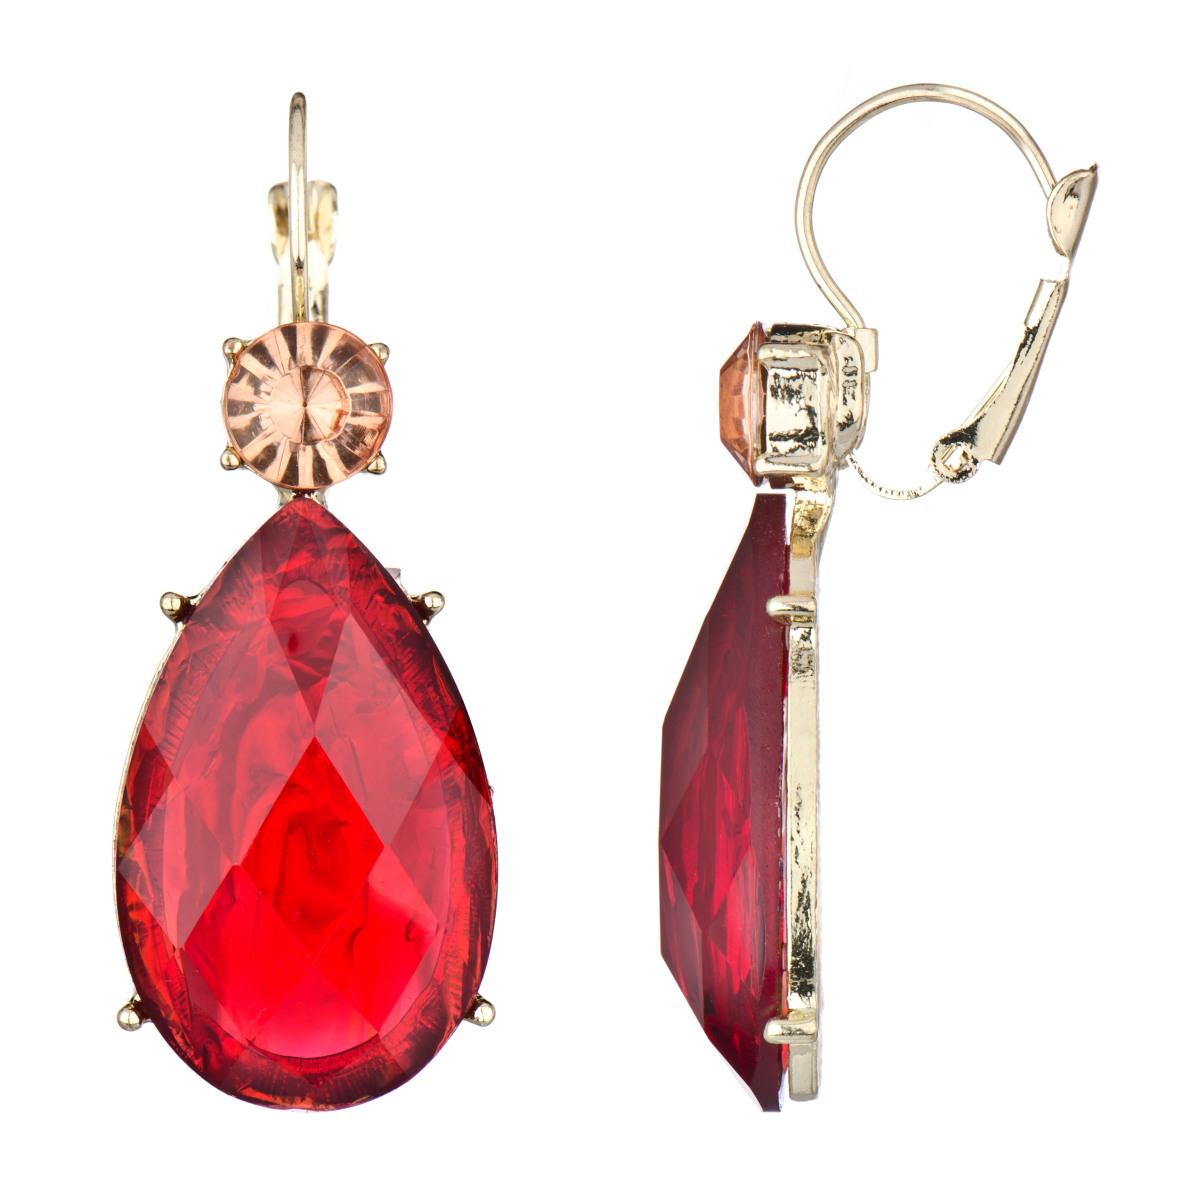 red earrings rinau0027s fancy pear drop earrings - red stone jchjslp